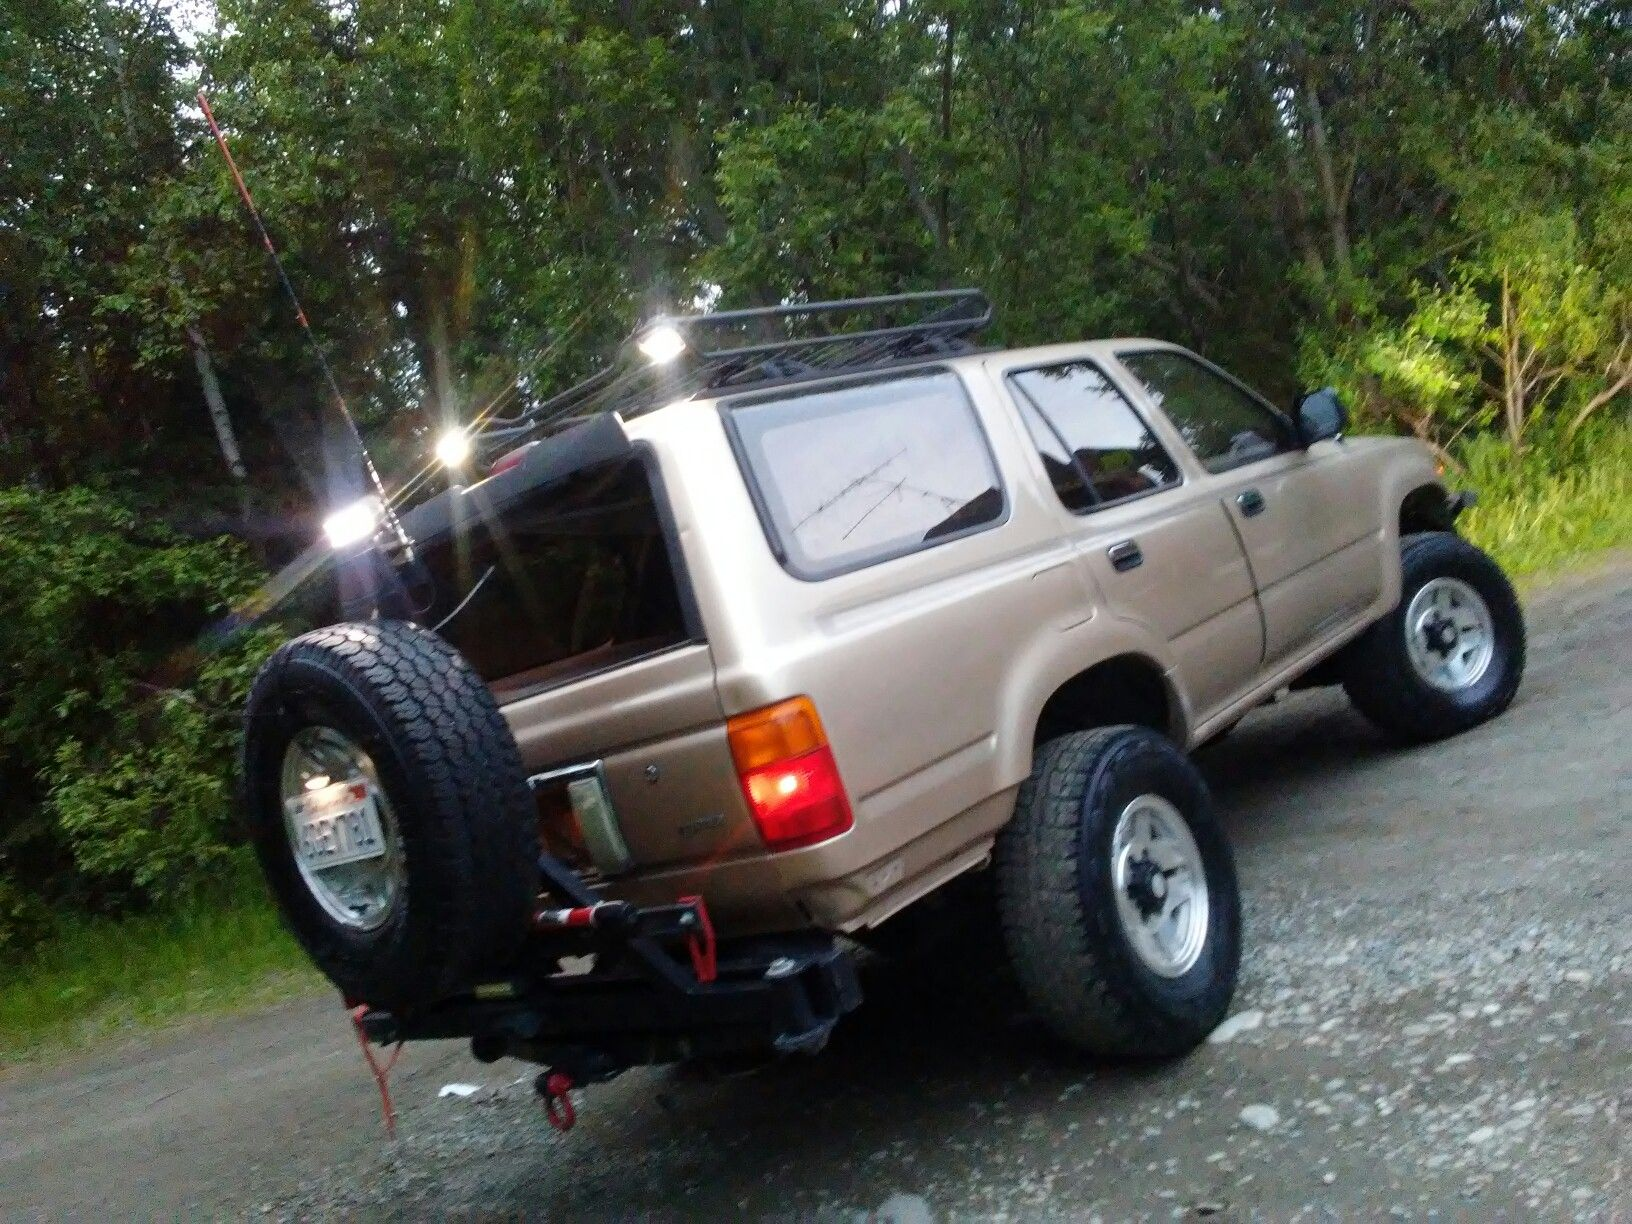 Customized 1995 Toyota 4runner 2nd Gen Wasilla Alaska Roof Rack Swingout Tire Carrier Led Lights 3 0 Roadtires 4runner Toyota 4runner Tires Online